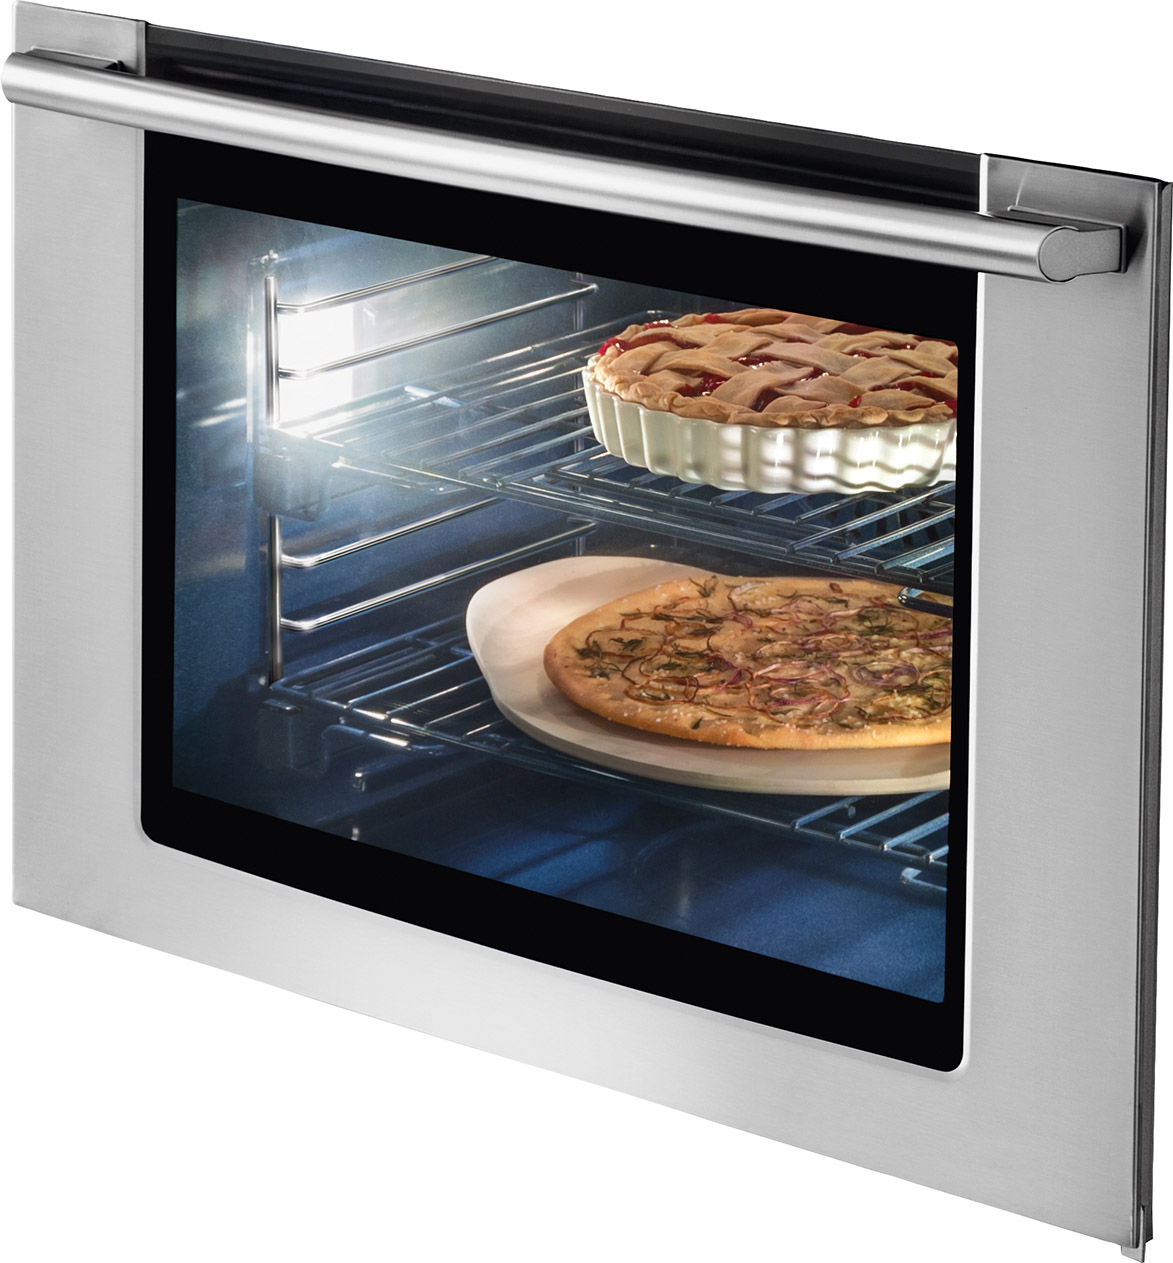 Electrolux 30 Built In Electric Single Oven Stainless Steel Wall Wiring Diagram Ew30ew55ps